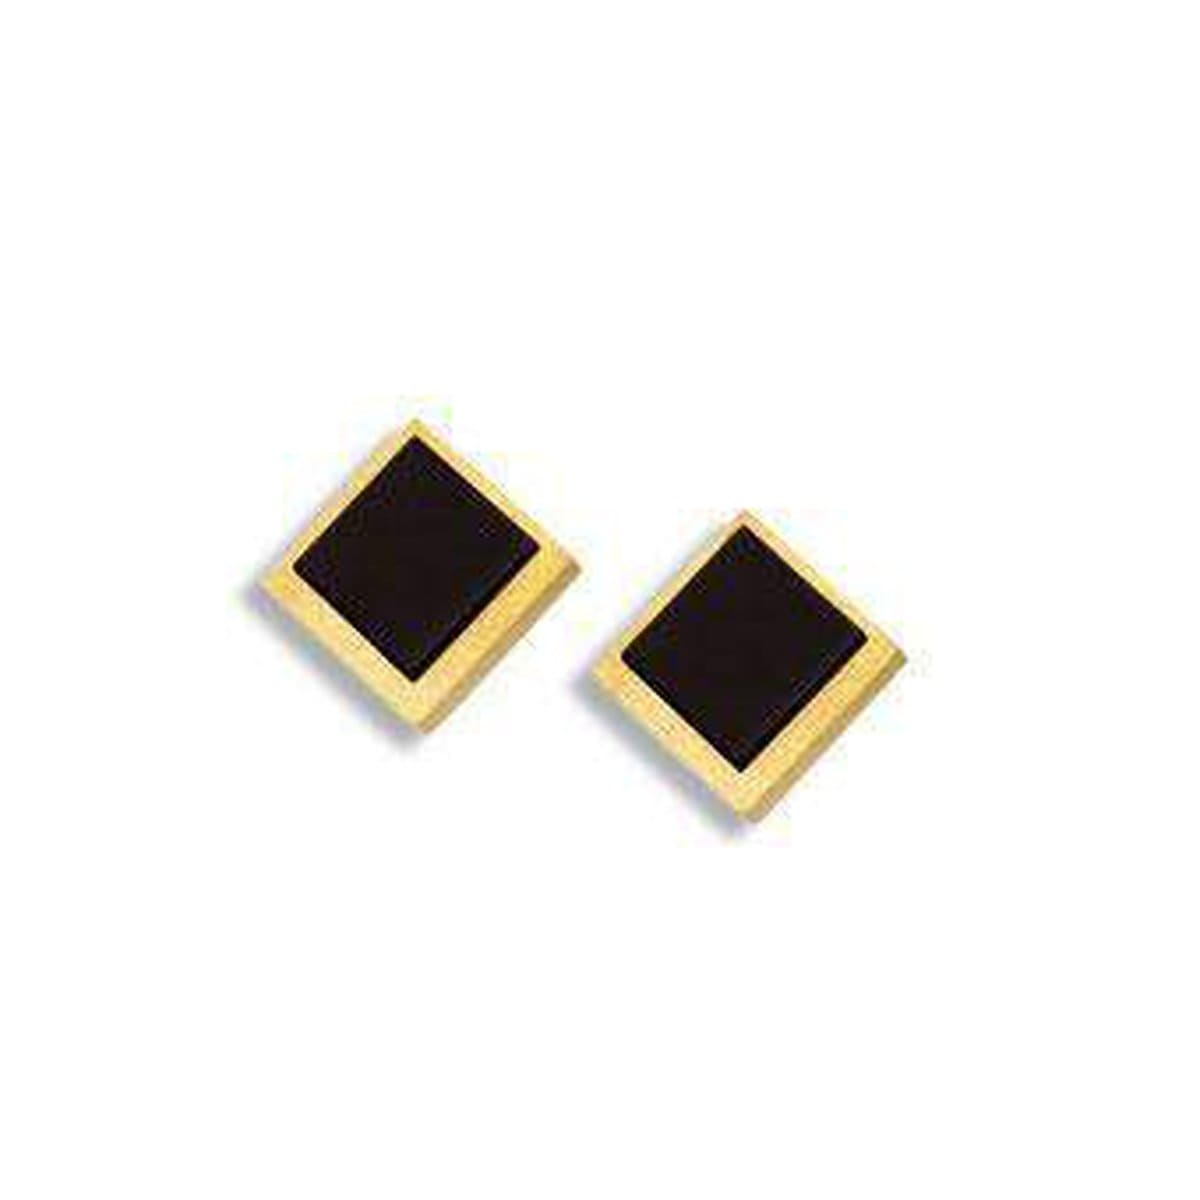 Tabos Onyx Pin Earrings - 19521896